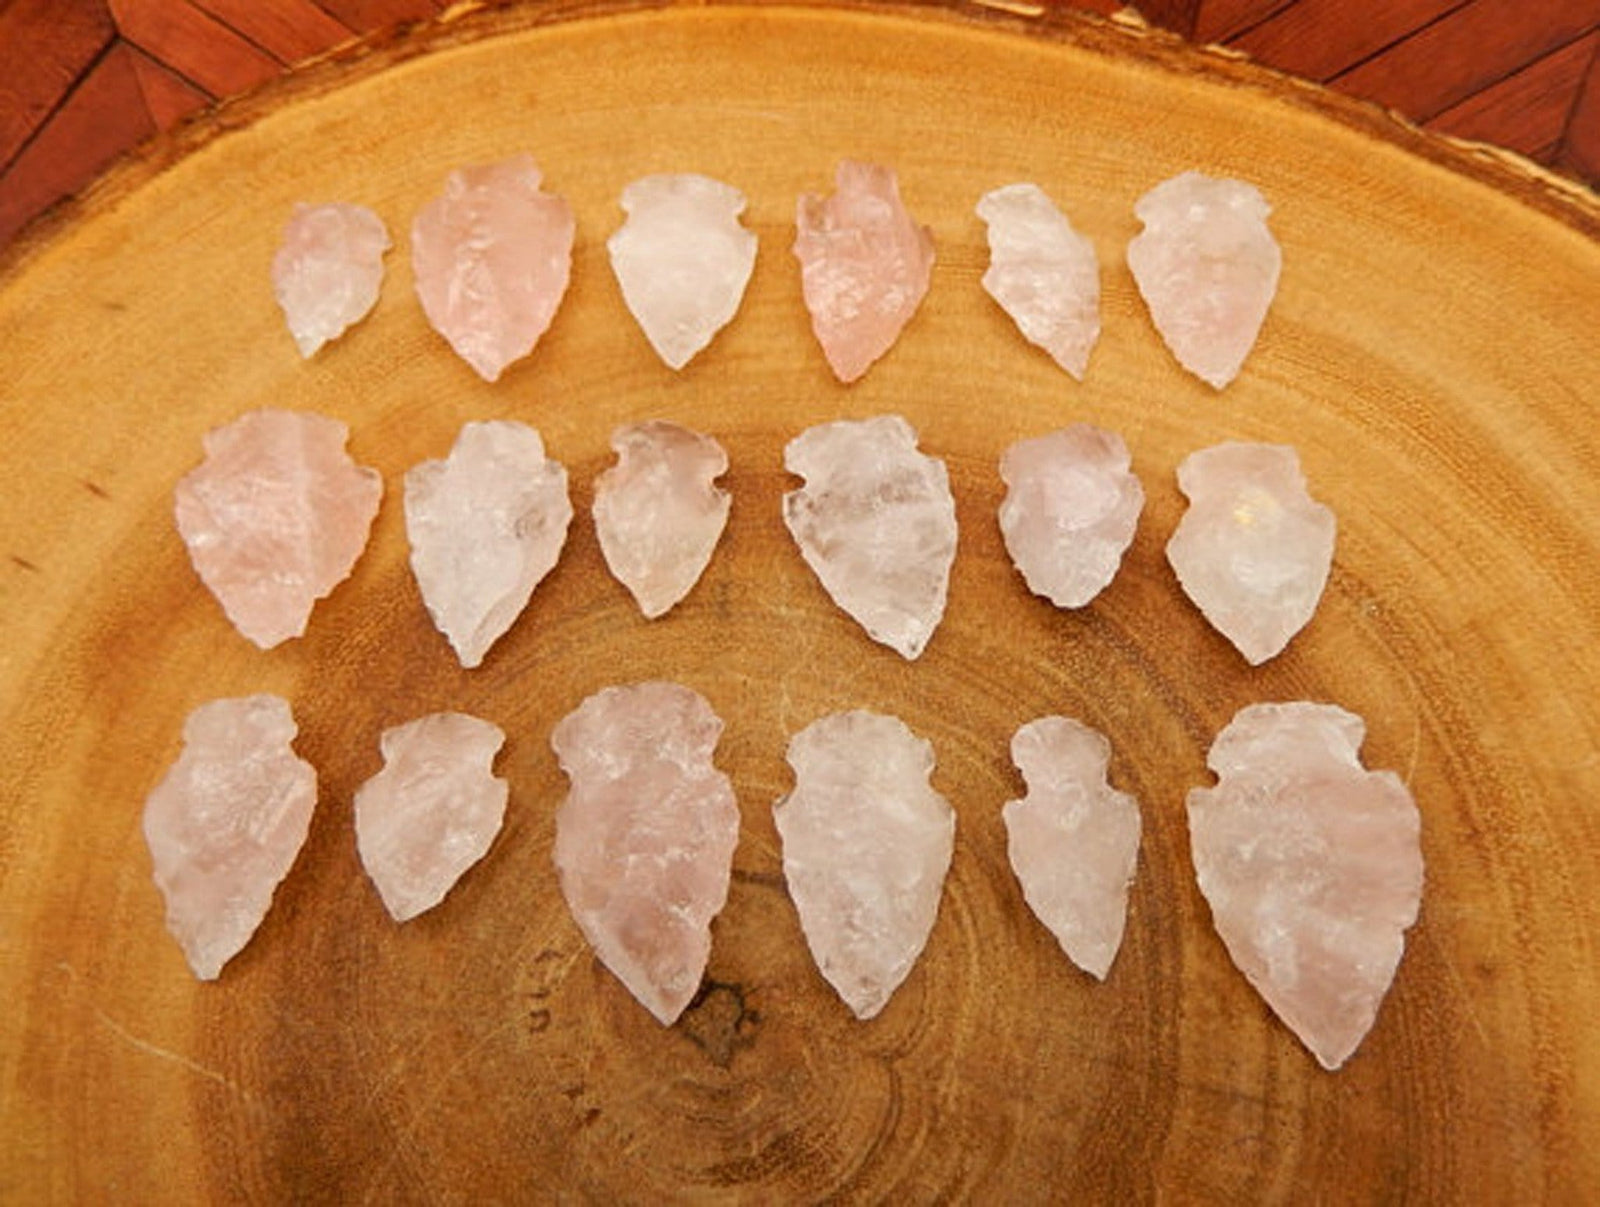 Arrowhead - Rose Quartz Arrowhead RK164b1